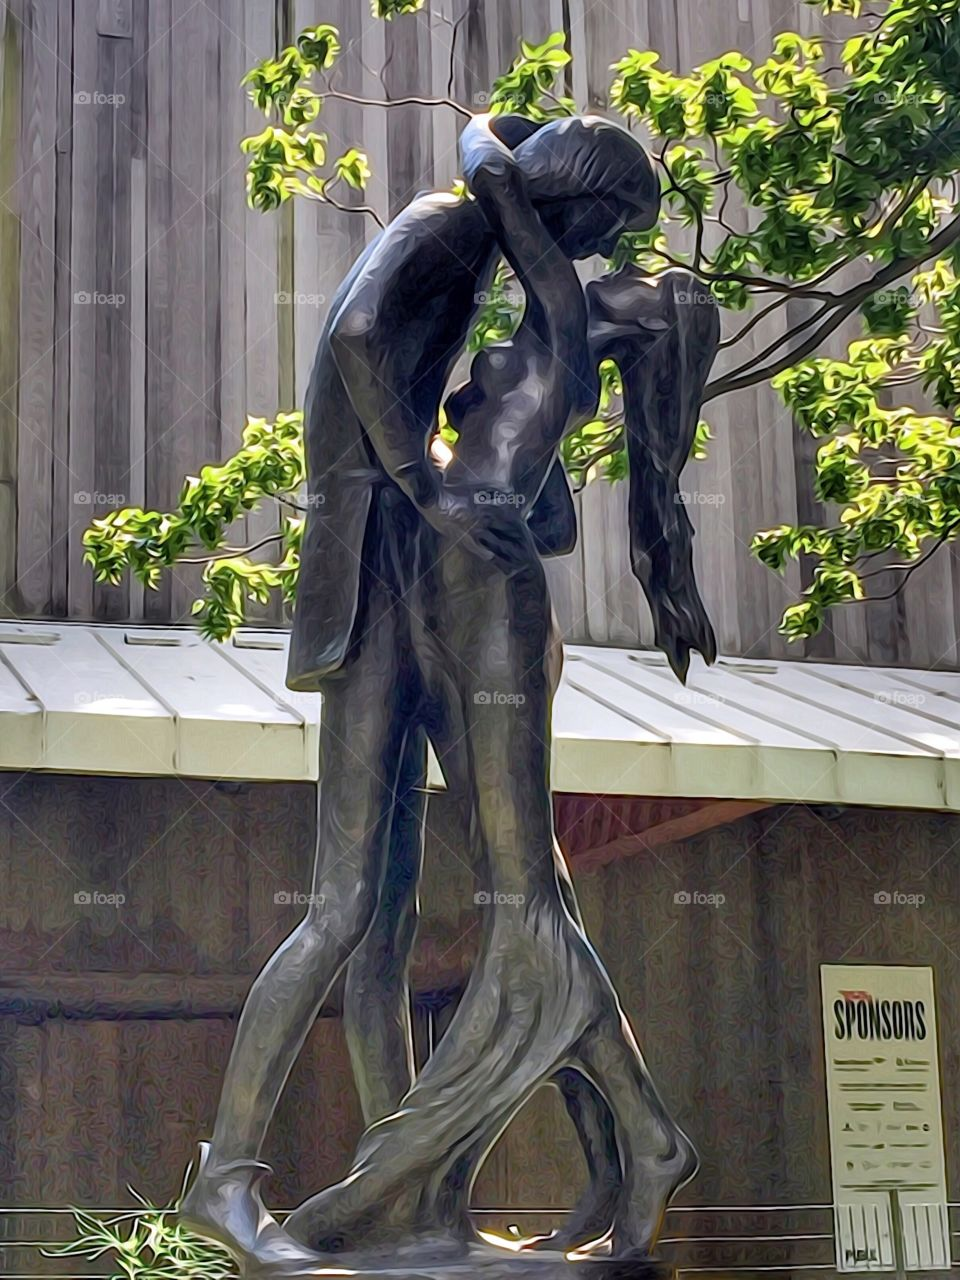 Romeo and Juliet Statue, Central Park, New York City. Instagram,@PennyPeronto